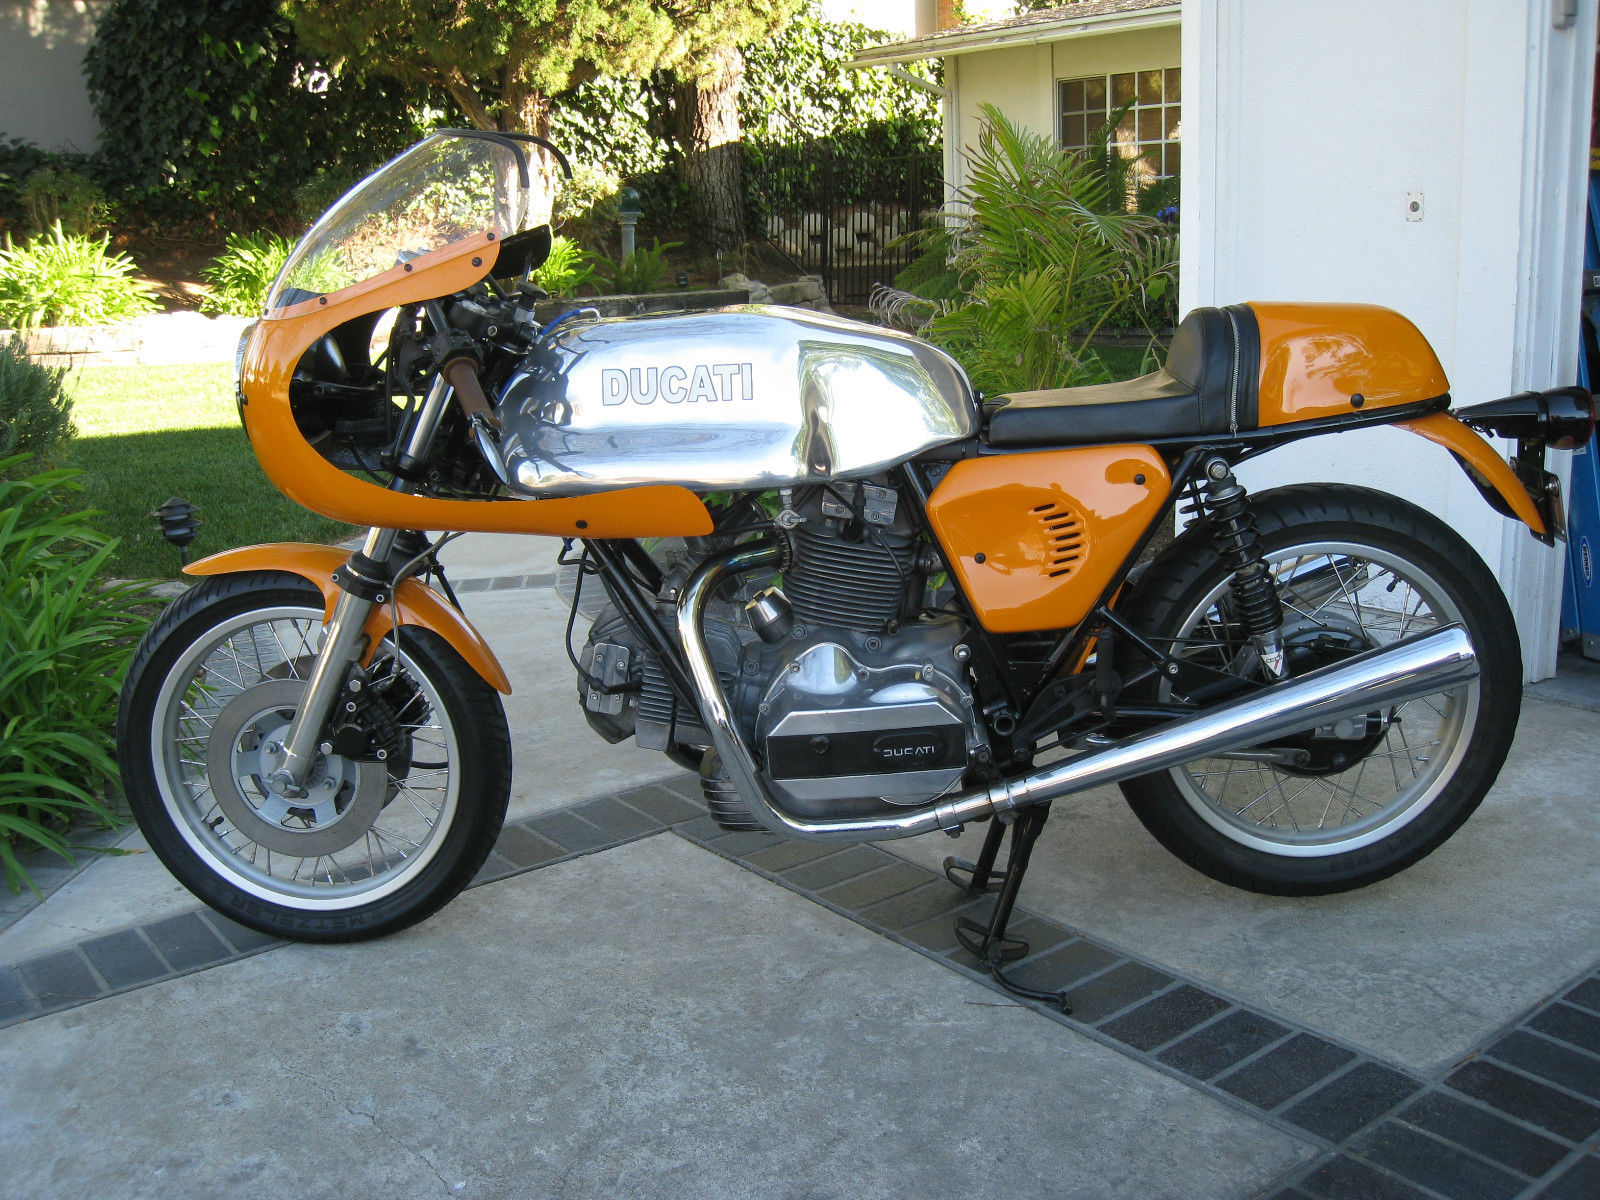 invoking dharma 1978 ducati 900 sd custom rare sportbikes for sale. Black Bedroom Furniture Sets. Home Design Ideas